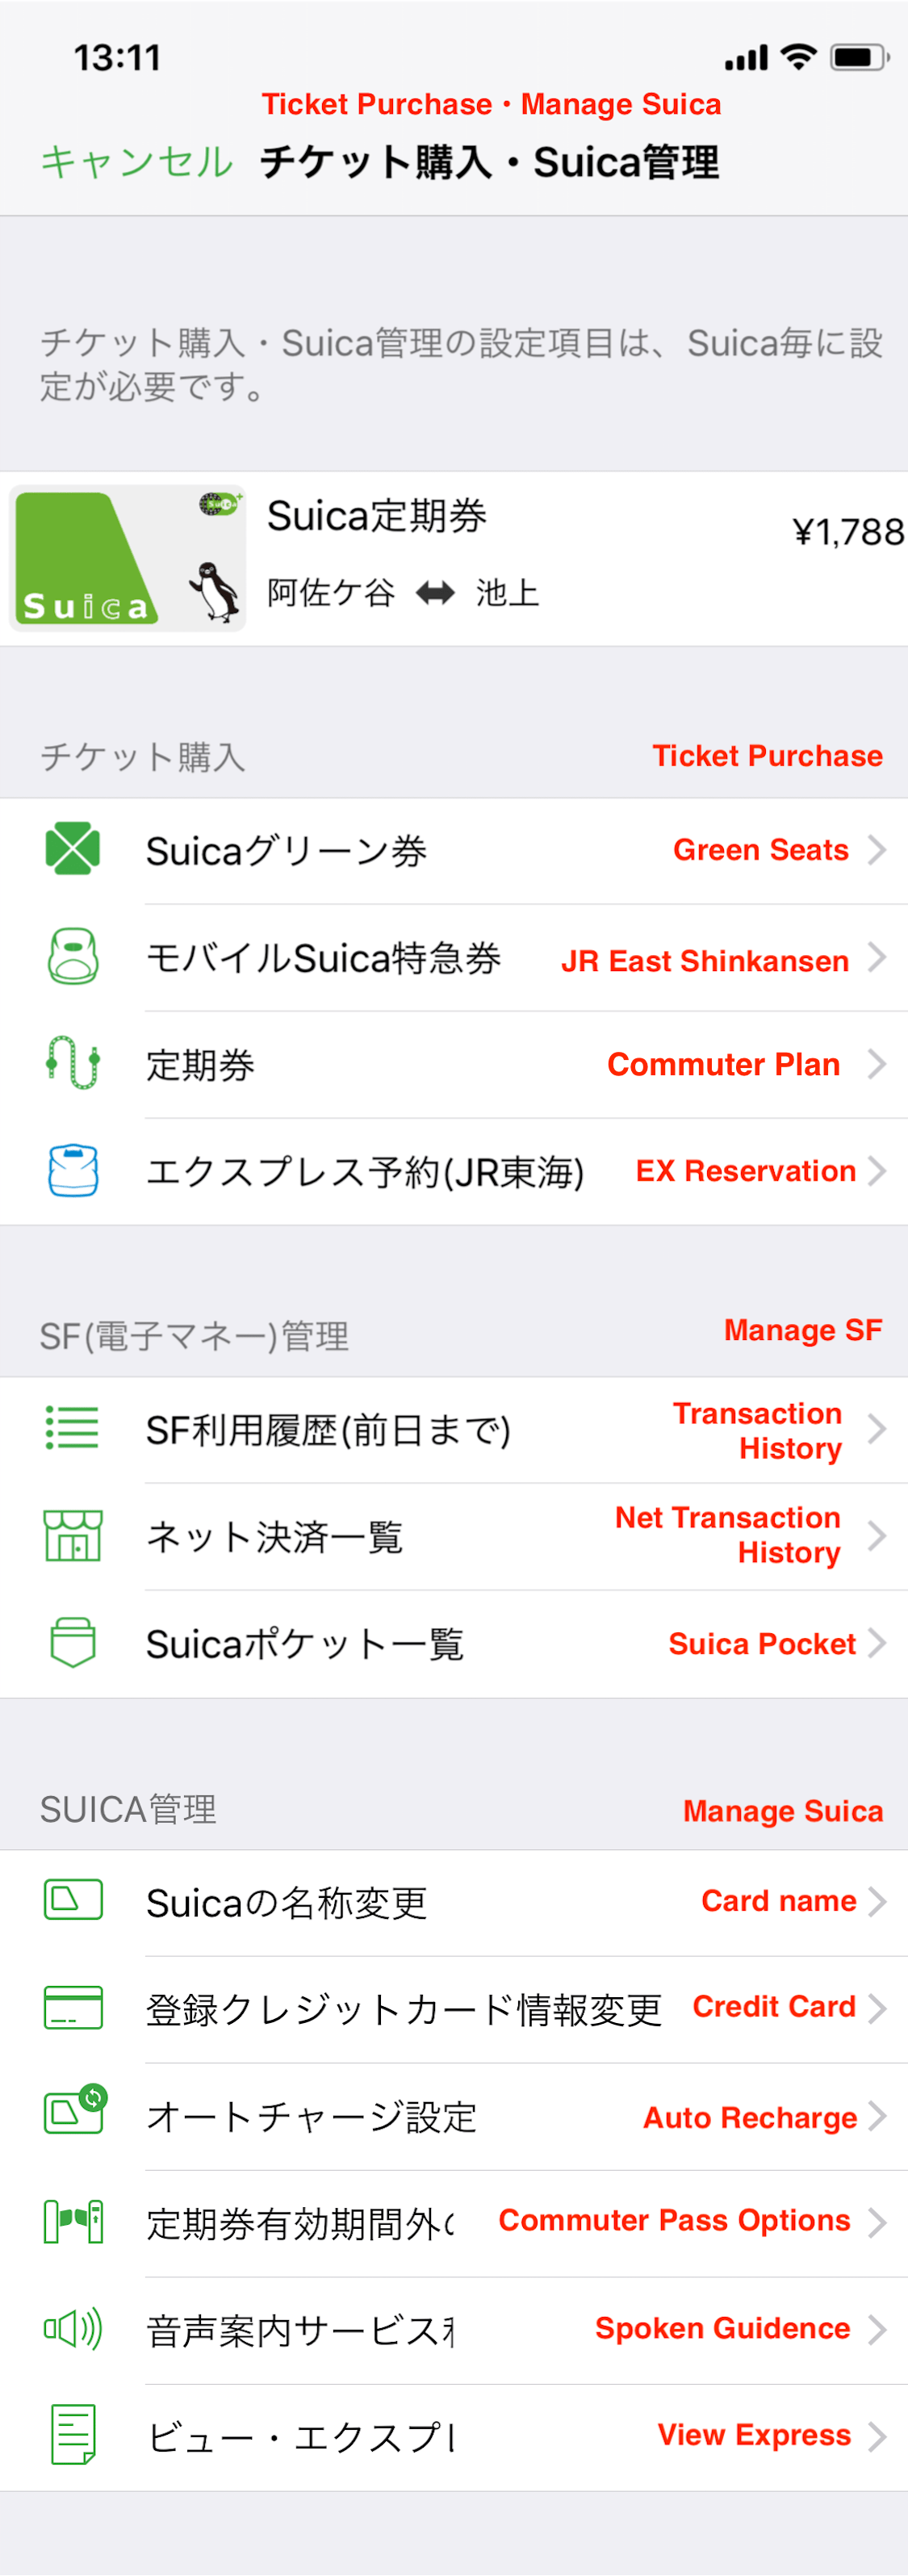 Ticket Purchase-Manage Suica is where the functionality of Mobile Suica is accessed.